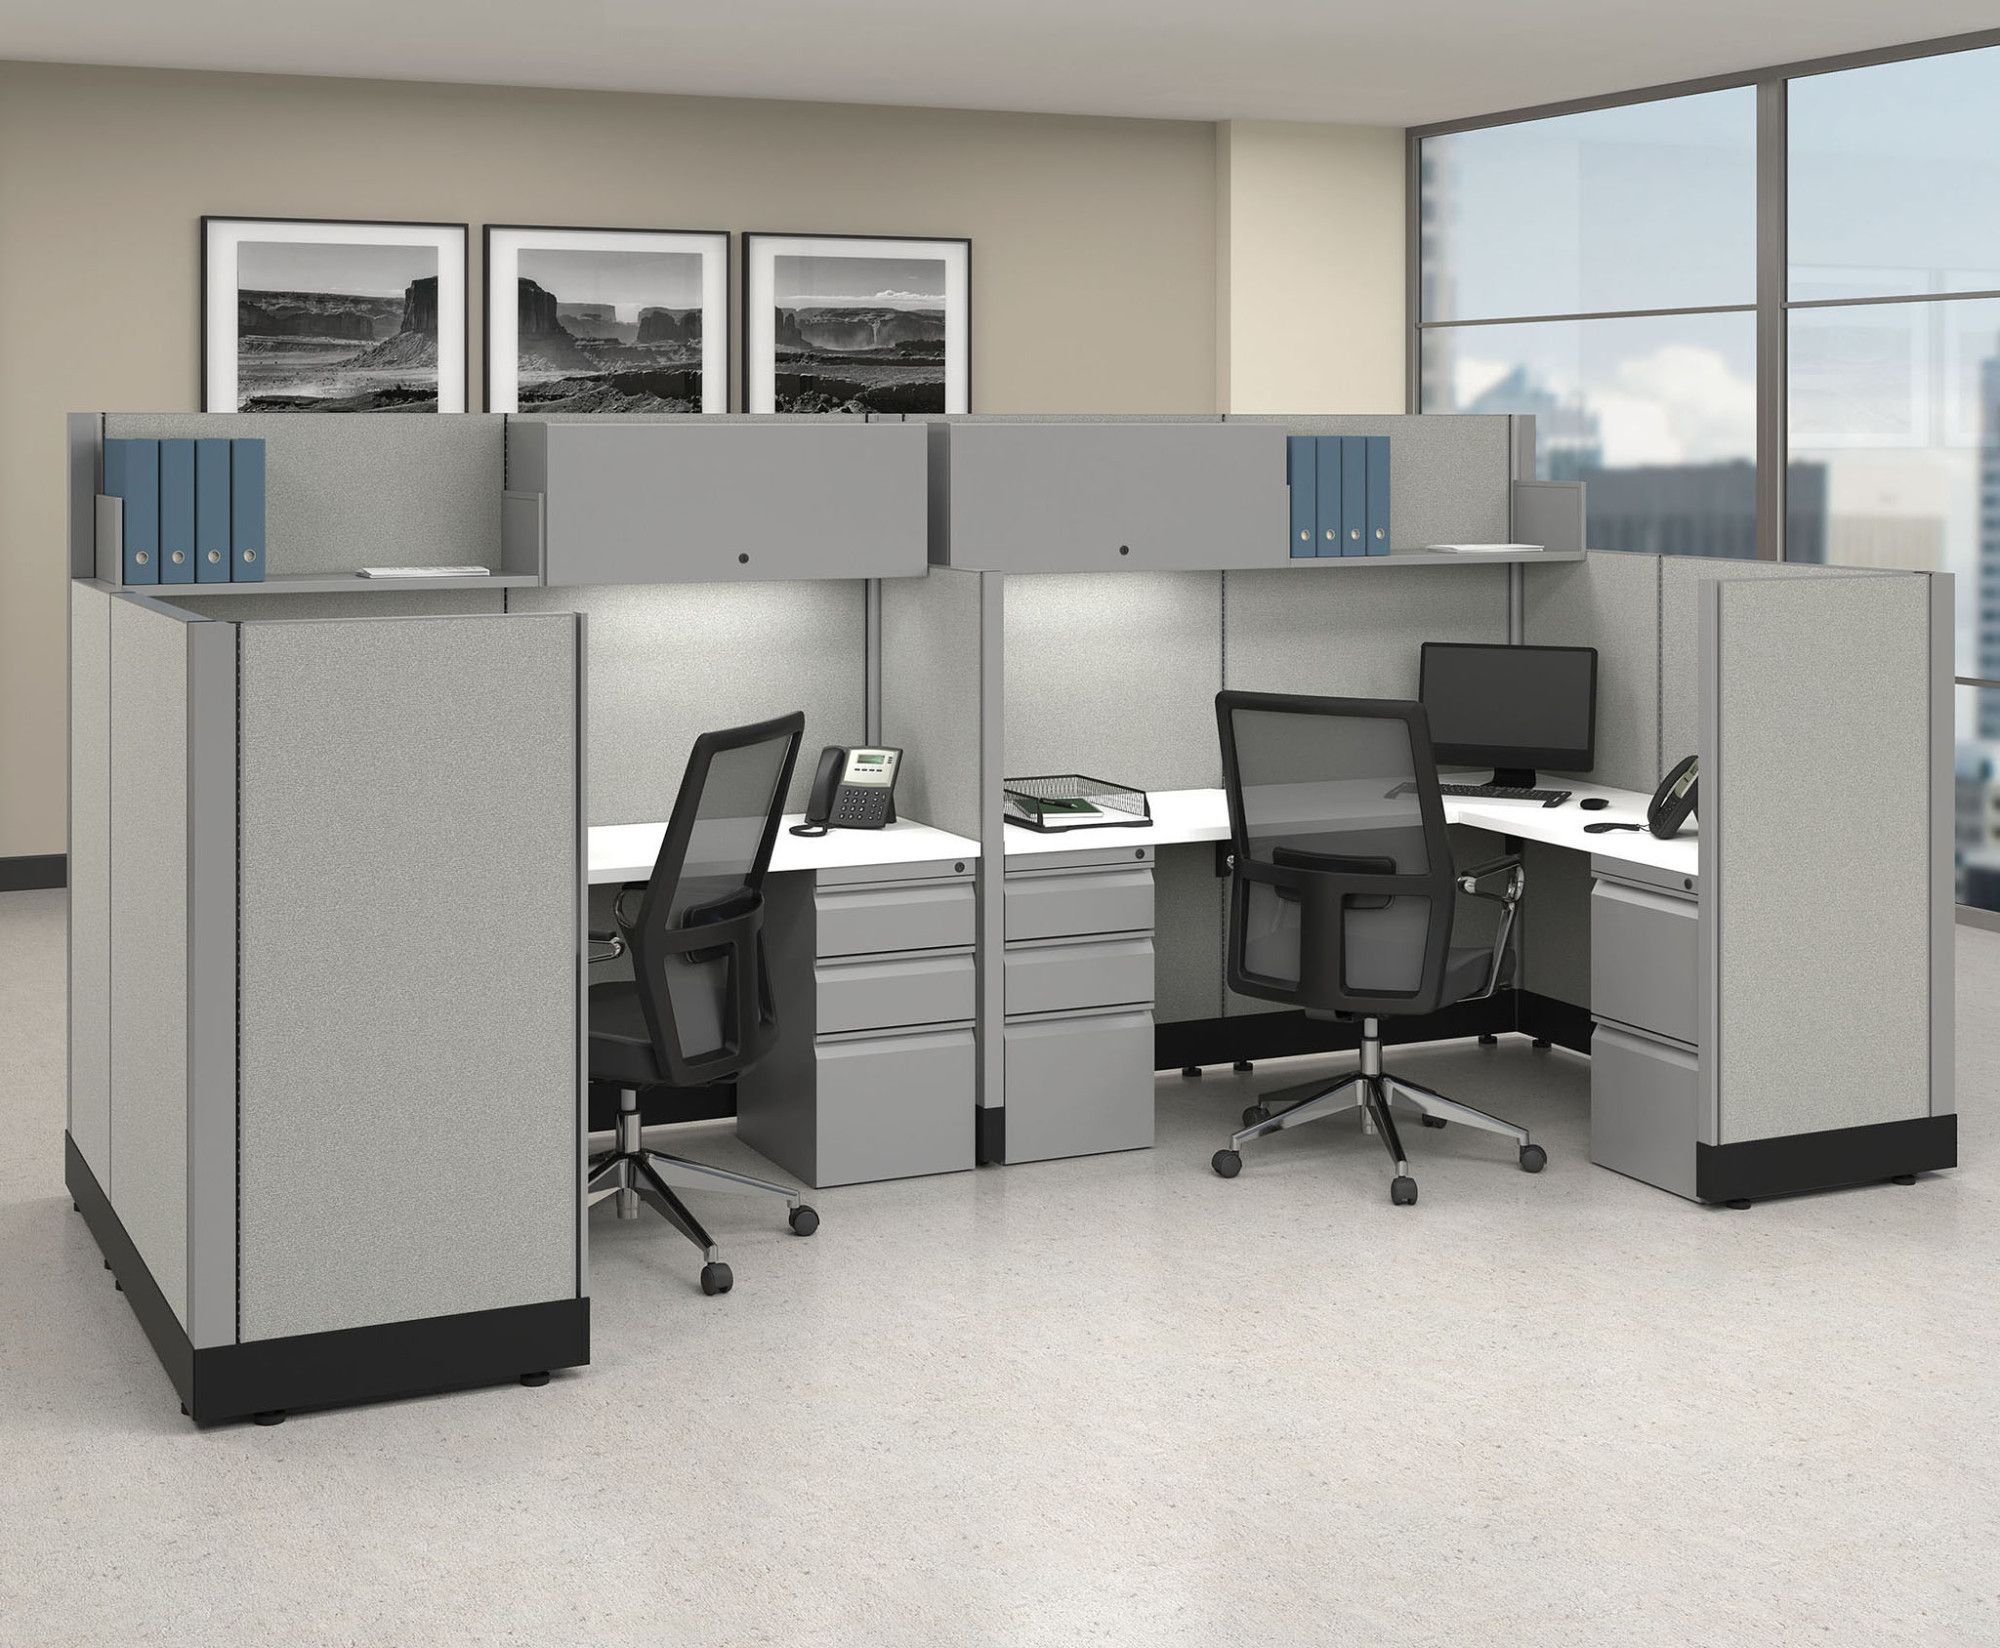 The Humble Cubicle May Be Out Of Fashion But Still Offers Value In Modern Office Spaces Feature Modular Office Furniture Office Interior Design Office Design